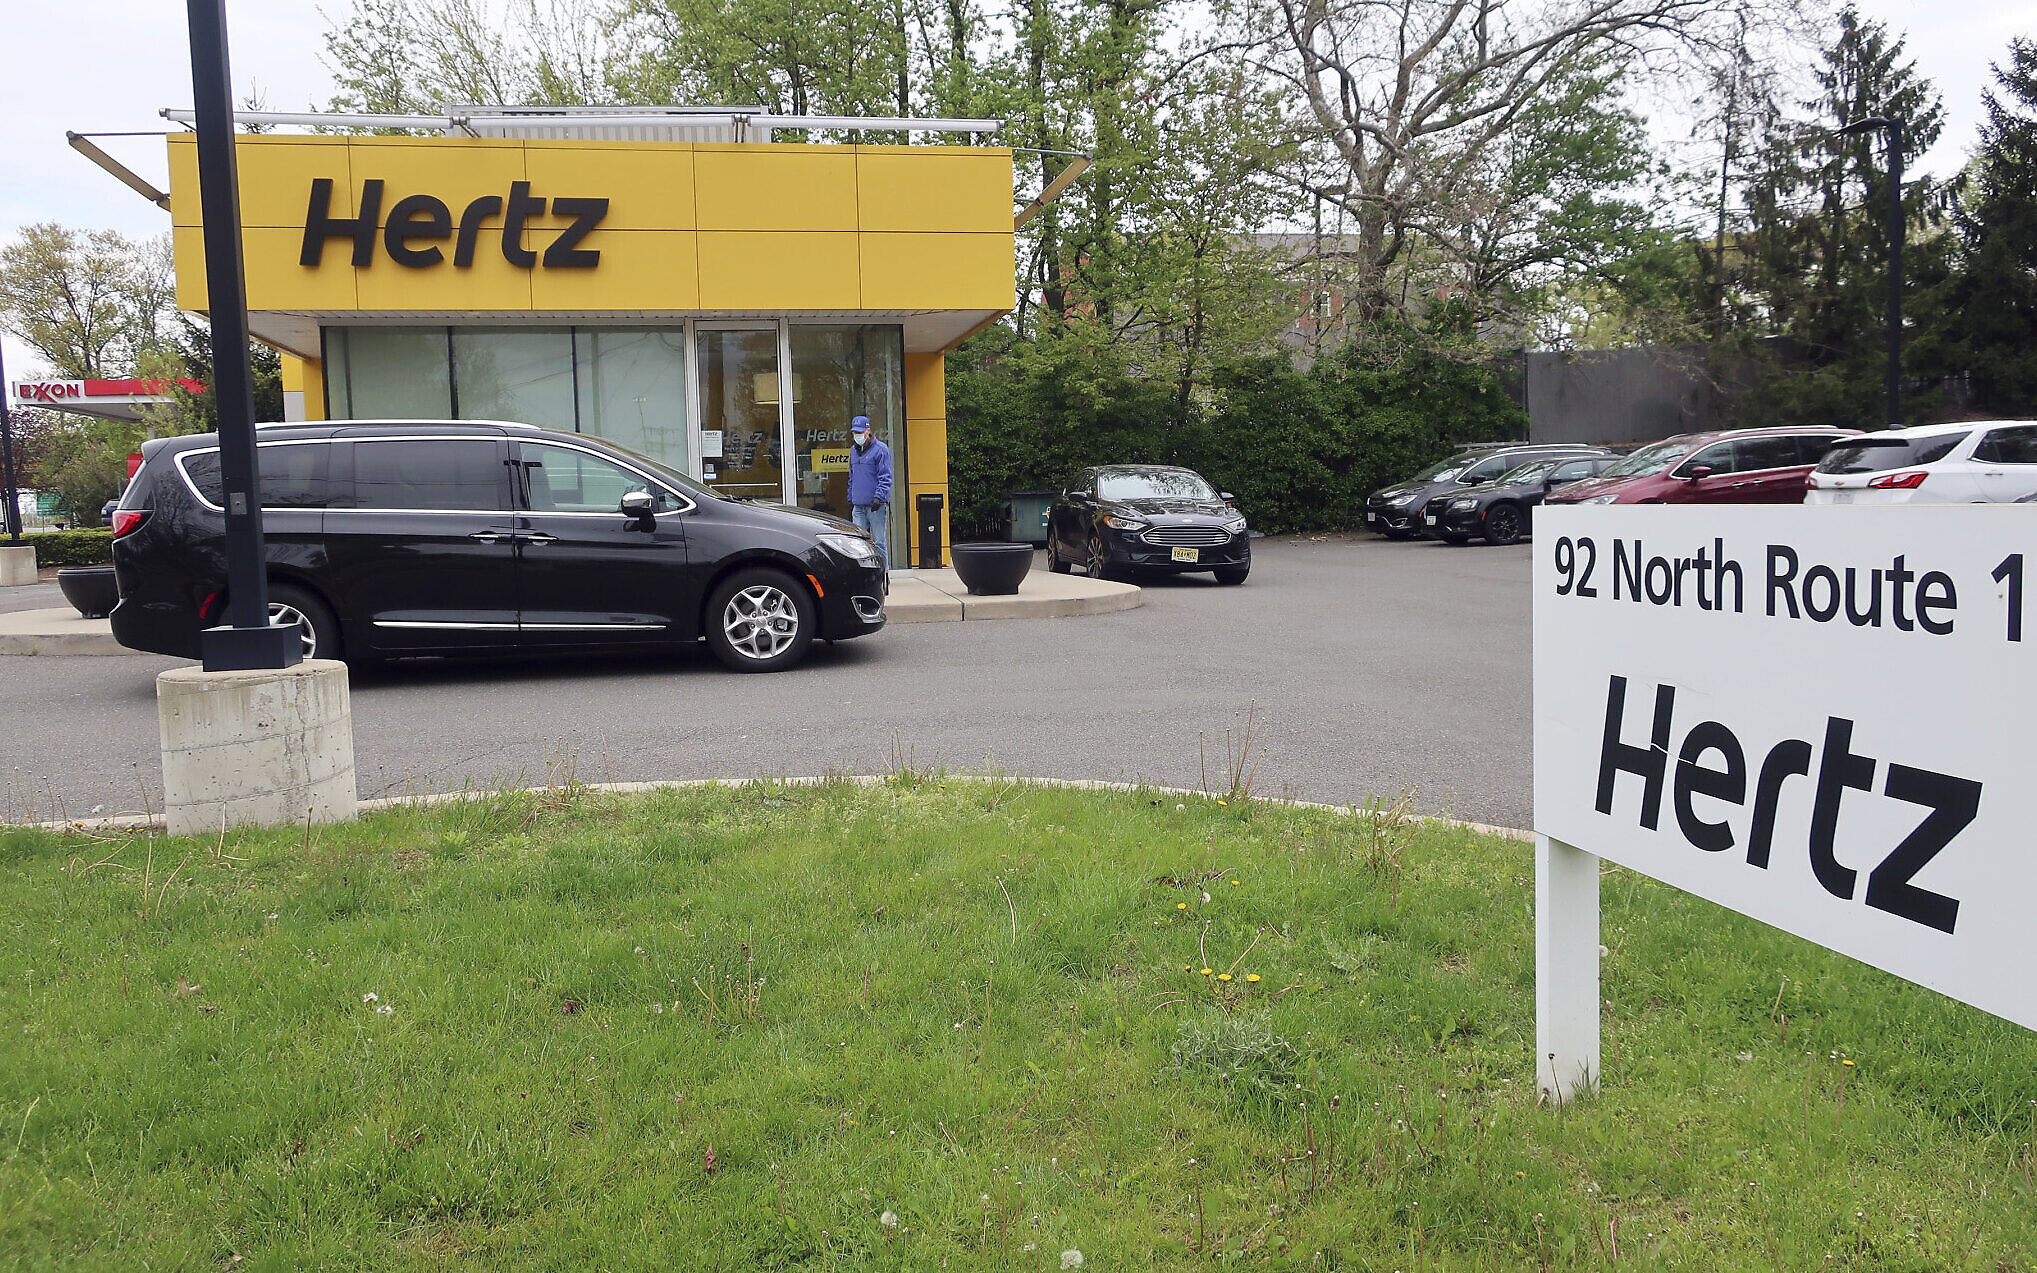 Hertz vehicle rental has filed for bankruptcy protection amid COVID-19